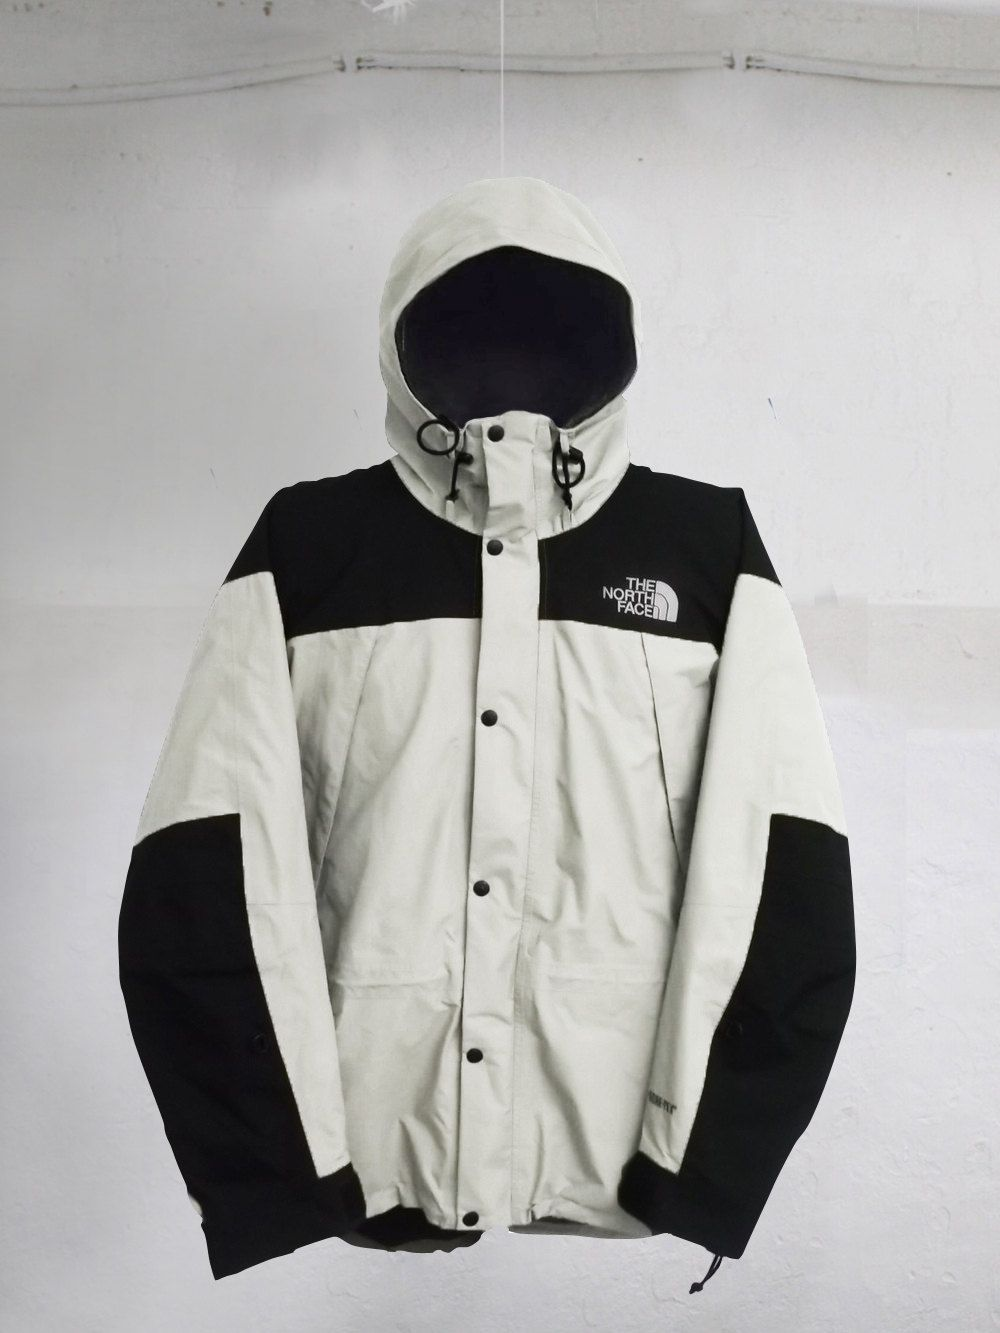 Vintage 90s The North Face Mountain Guide Gore Tex Jacket White Black Size S By Vapeovintage On Etsy Vintage Jacket Jackets Gore Tex Jacket